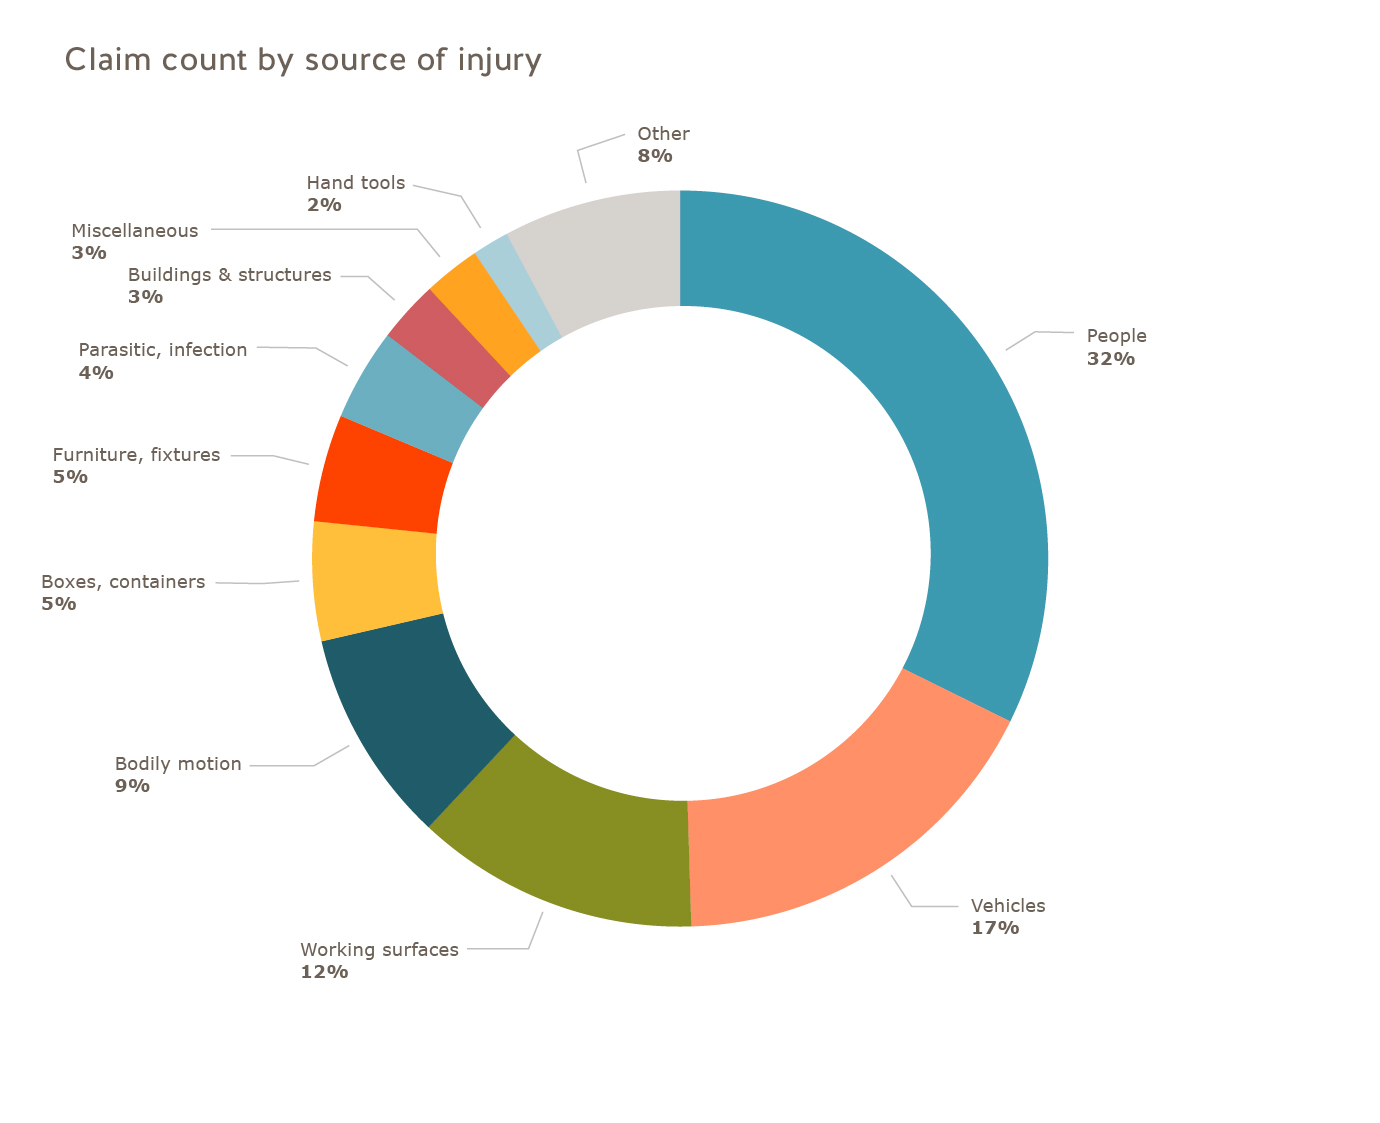 Health care industry claim count by source of injury 2016: people=32%; vehicles=17%; working surfaces=12%; bodily motion=9%; boxes, containers=5%; furniture, fixtures=5%; parasitic, infection=4%;  buildings & structures=3%; miscellaneous=3%; hand tools=2%; other=8%